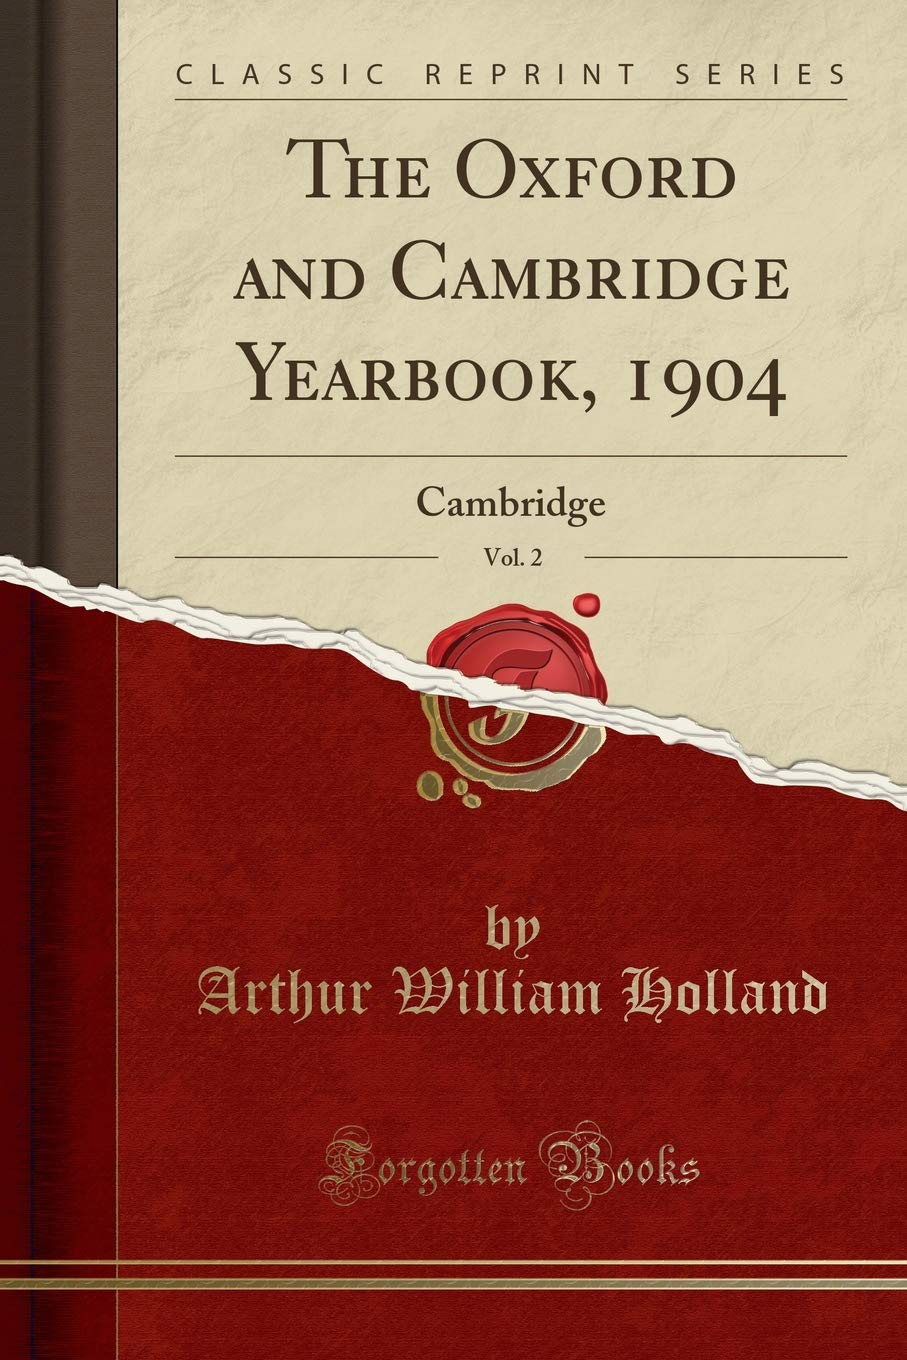 81dde2f81 The Oxford and Cambridge Yearbook, 1904, Vol. 2: Cambridge (Classic  Reprint) Paperback – September 29, 2018